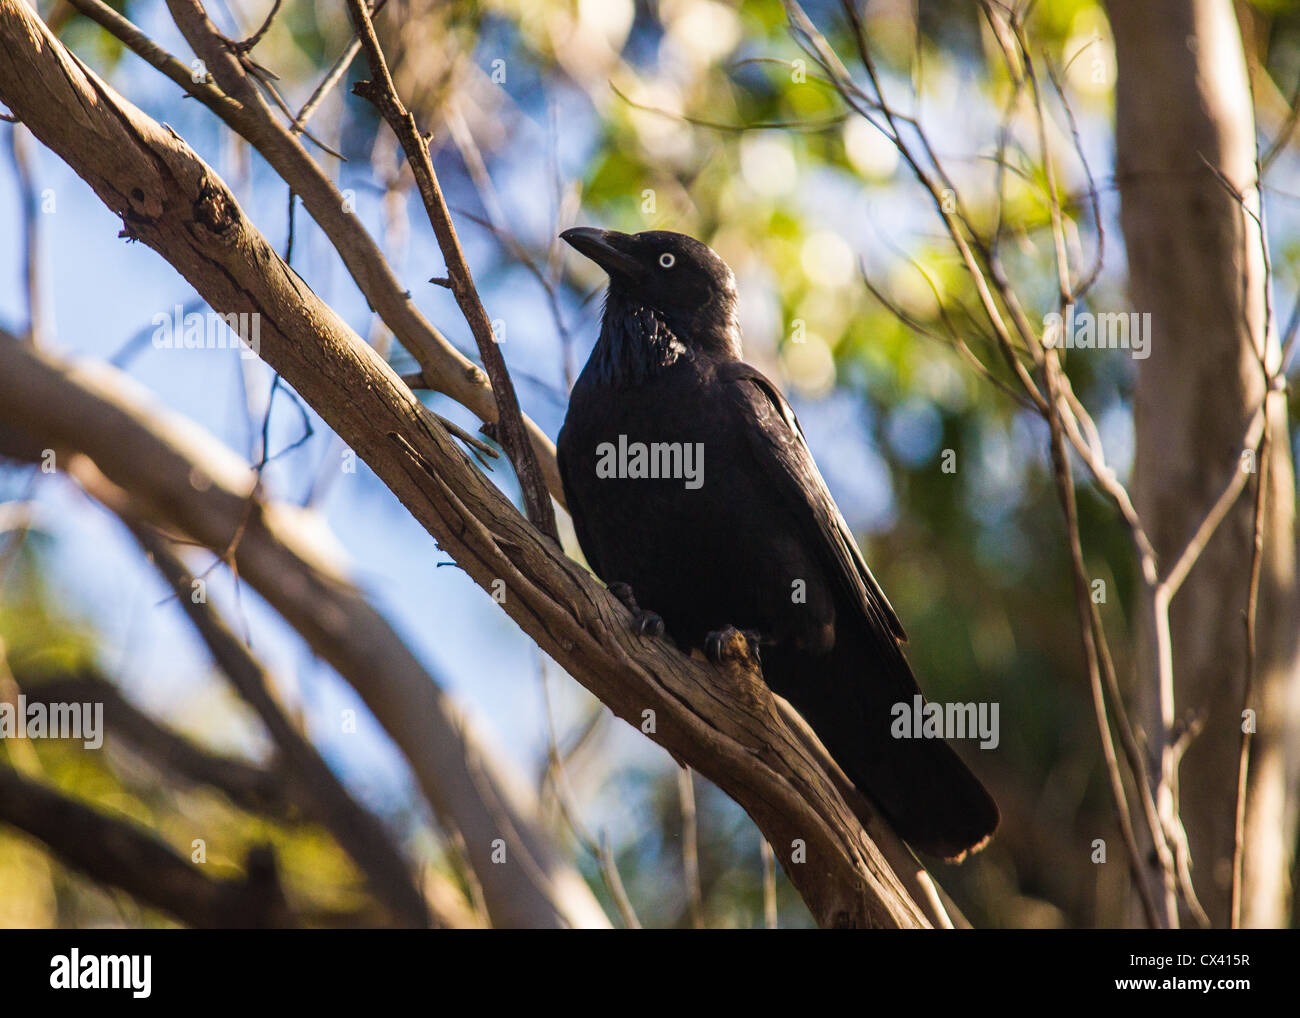 Australian Raven (Corvus coronoides) in a Tree at Manly Dam - Stock Image